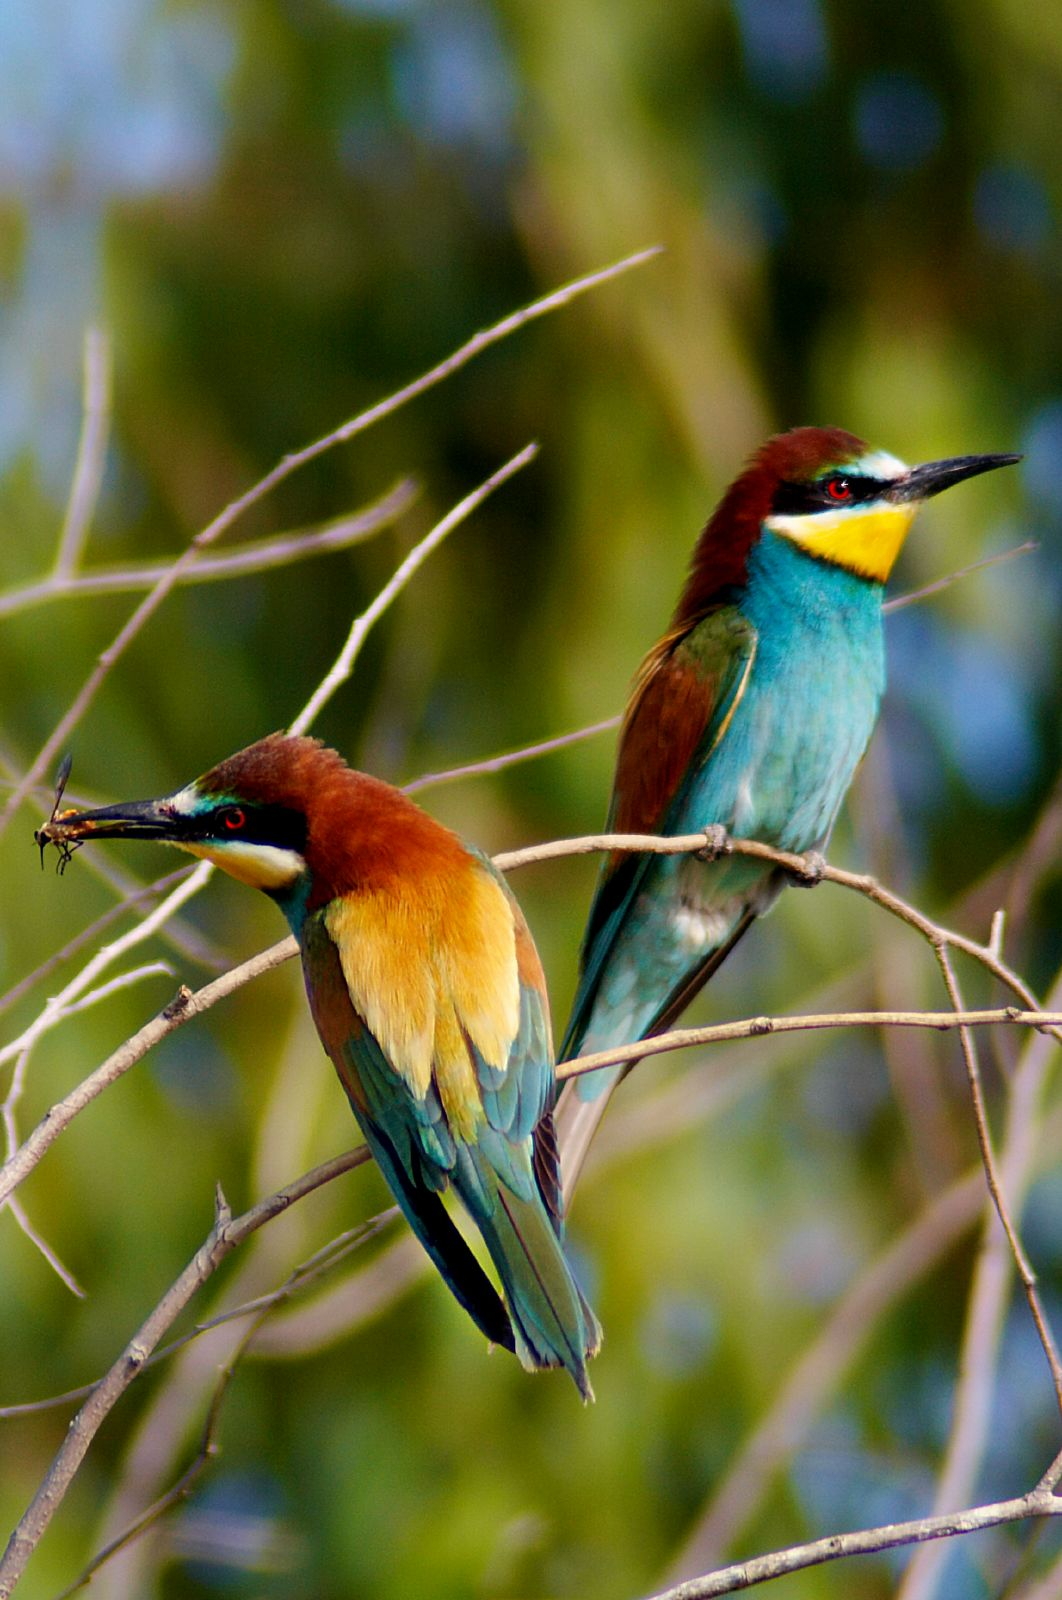 European bee eater size - photo#20